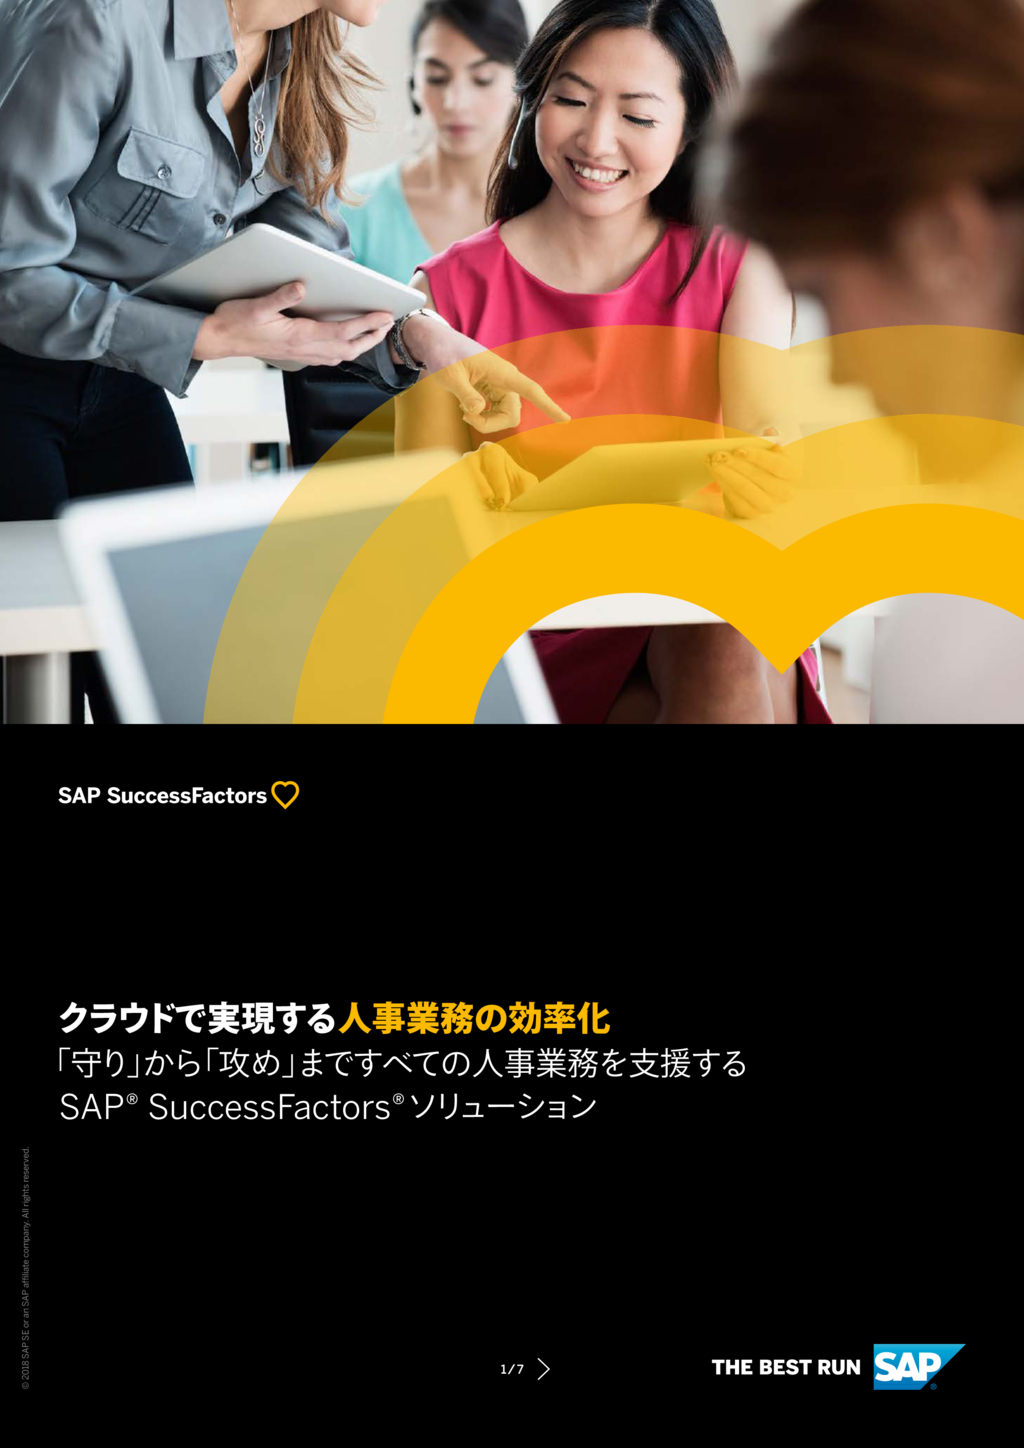 SAP SuccessFactorsの資料